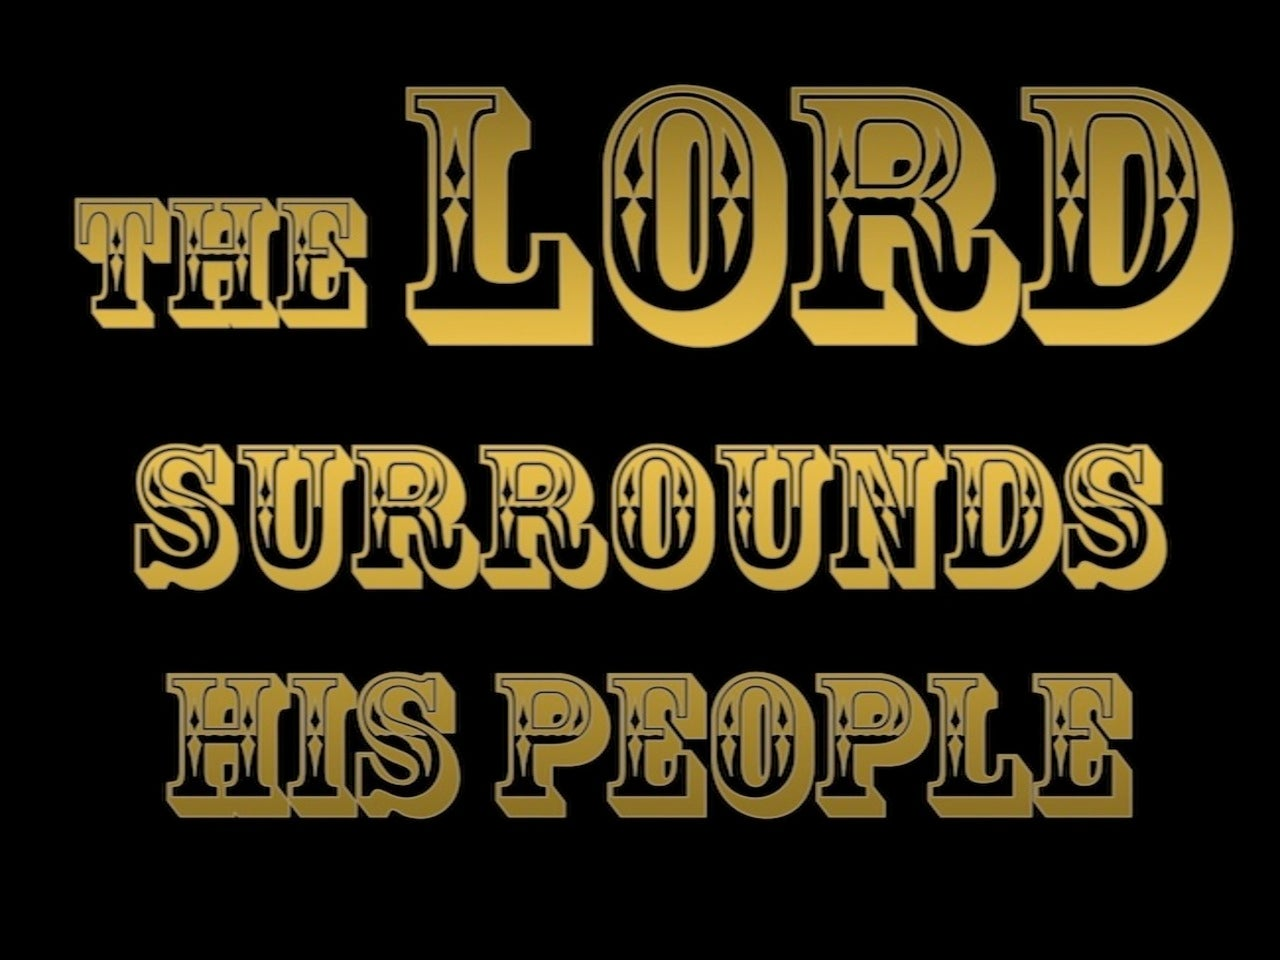 Psalm 125:2 The Lord Surrounds His People (black)